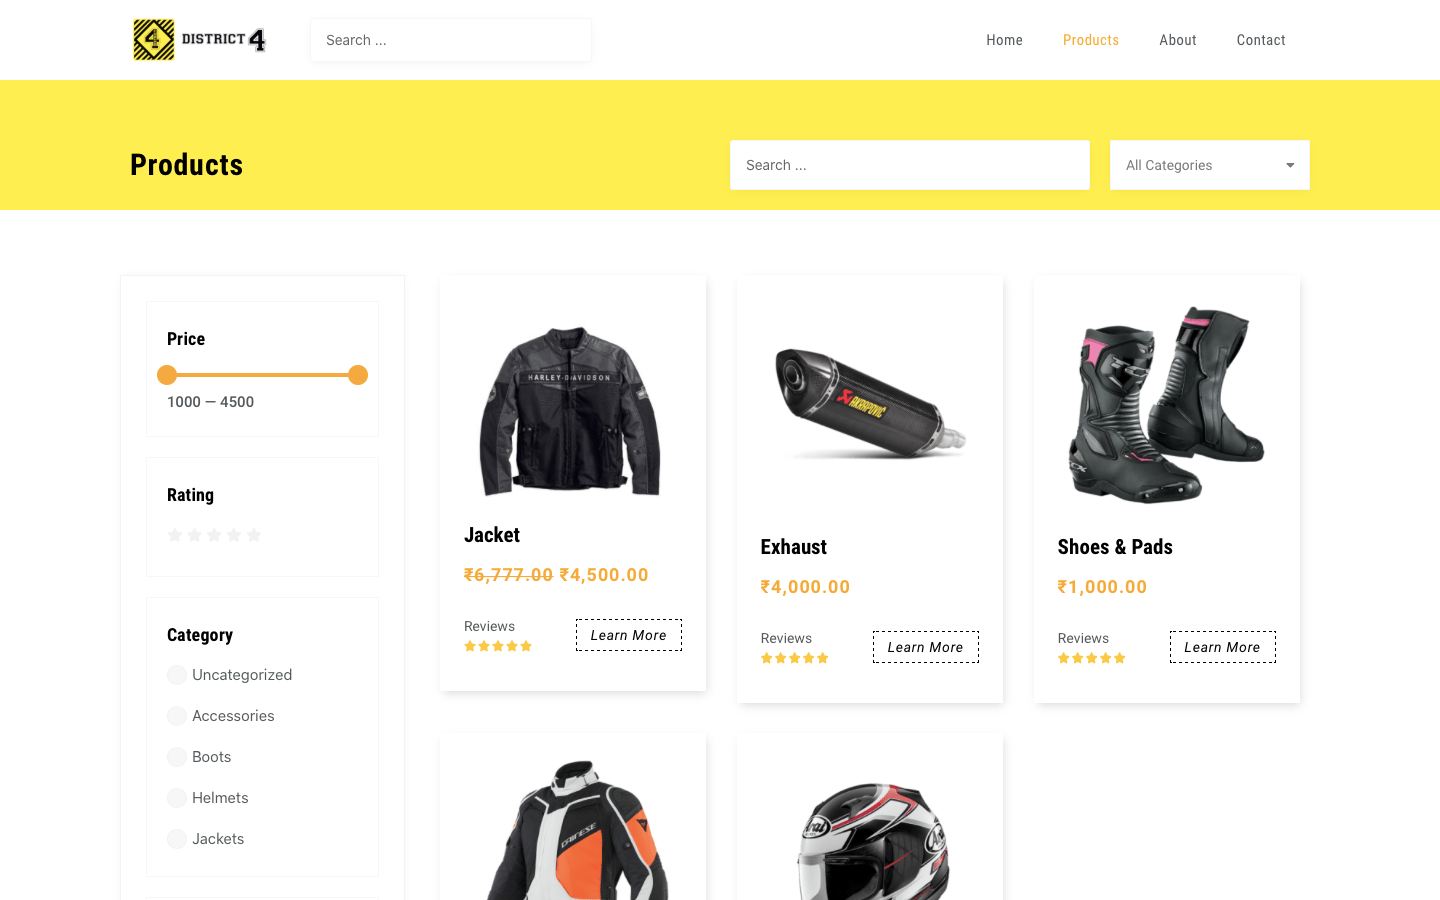 District 4 product page